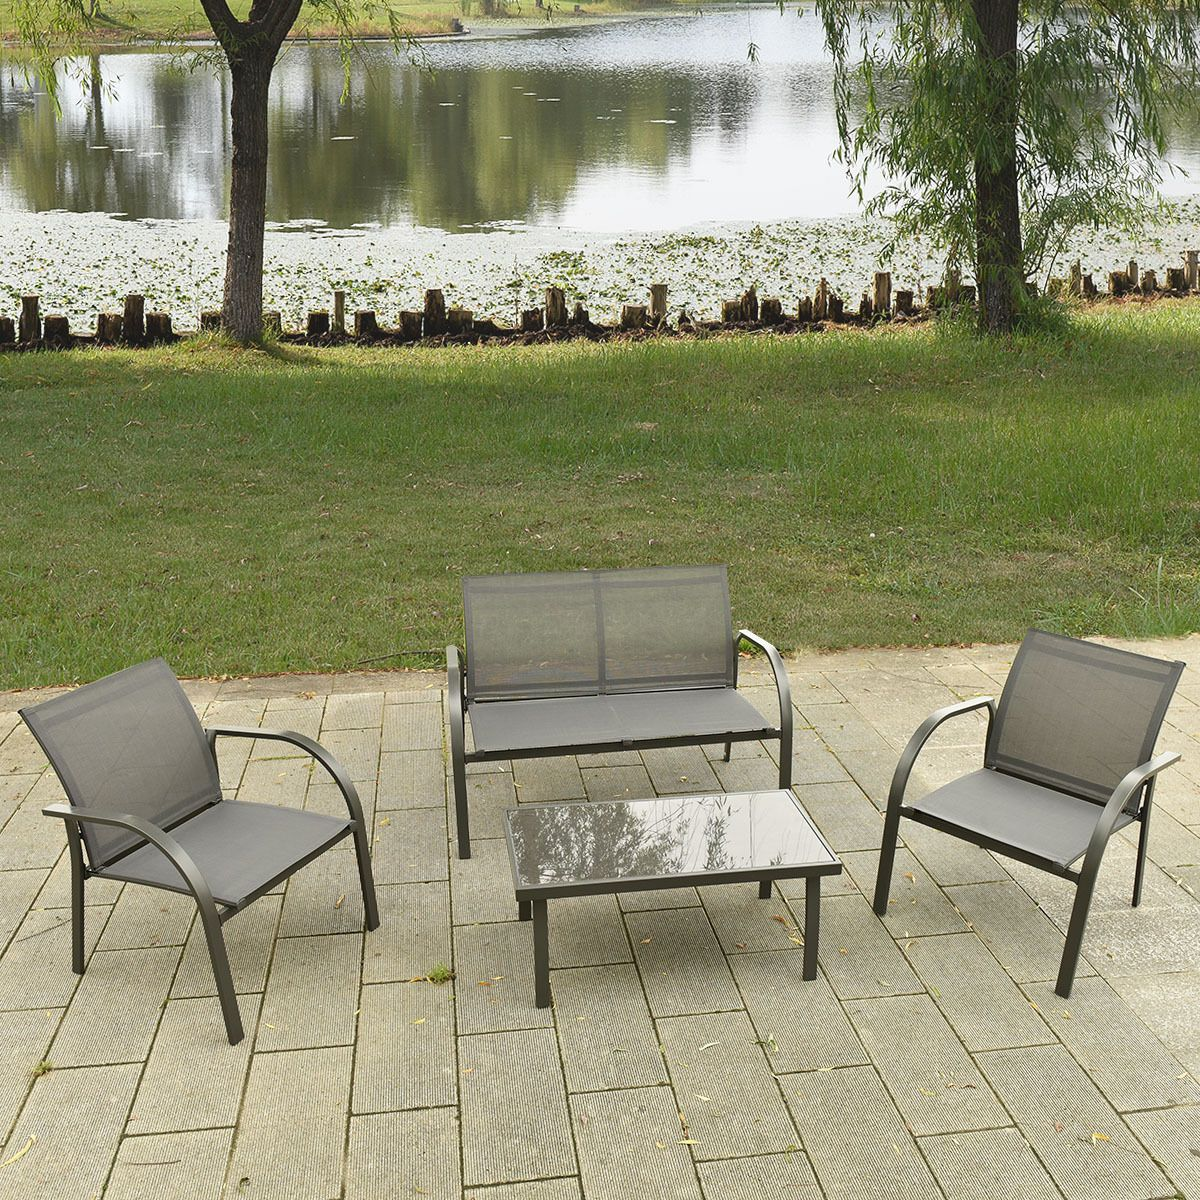 Attractive 4PCS Patio Garden Furniture Set Steel Frame Outdoor Lawn Sofa Chairs Table  Gray